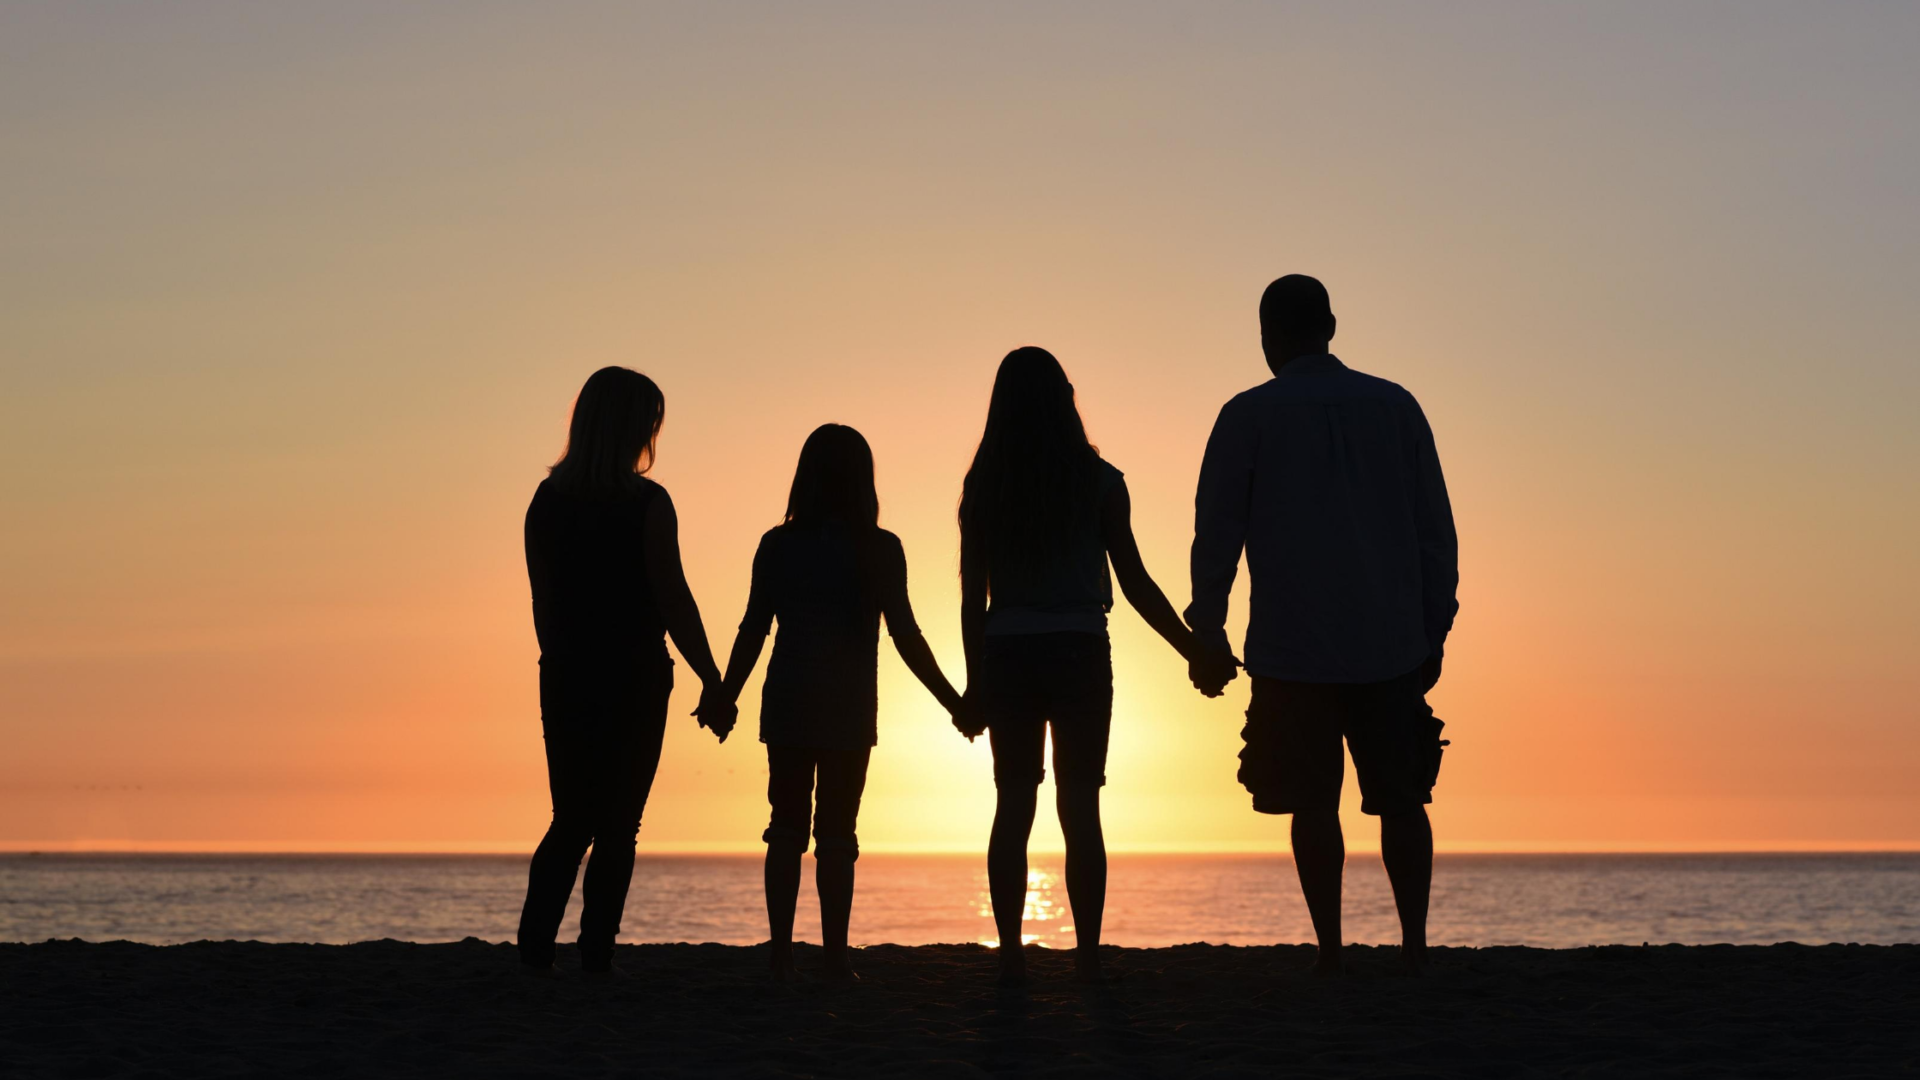 mother, two daughter, and dad holding hands and silhouetted before a sunset